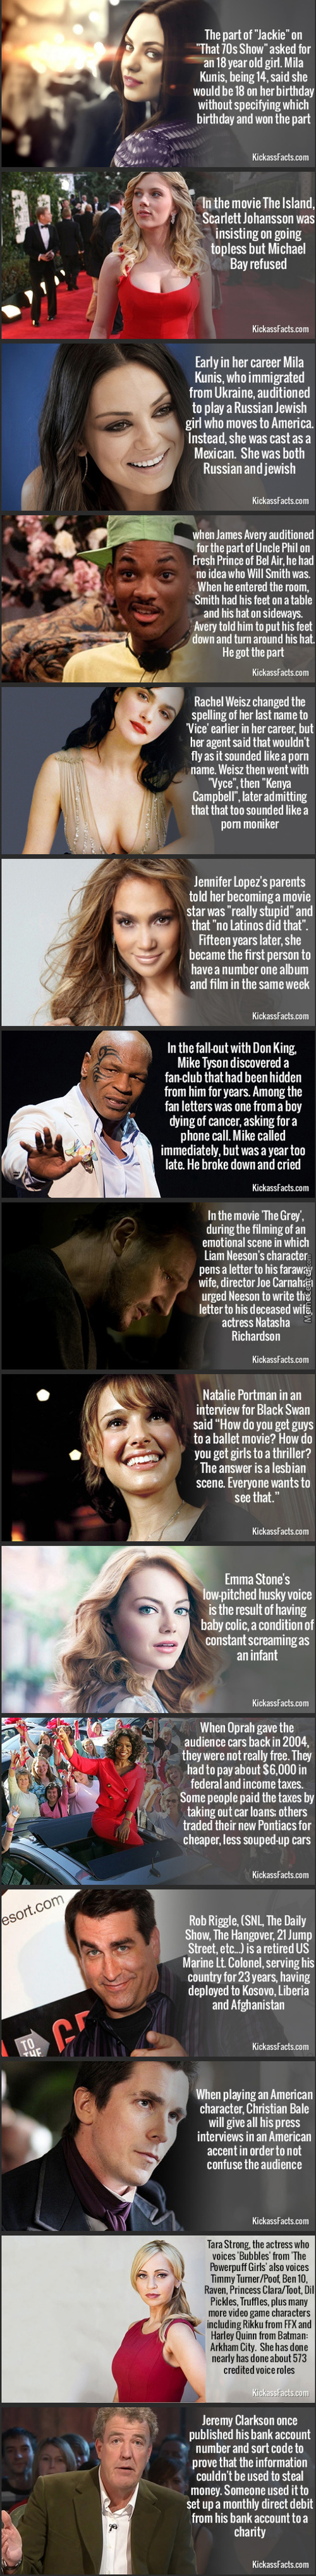 15 Awesome Facts About Celebrities